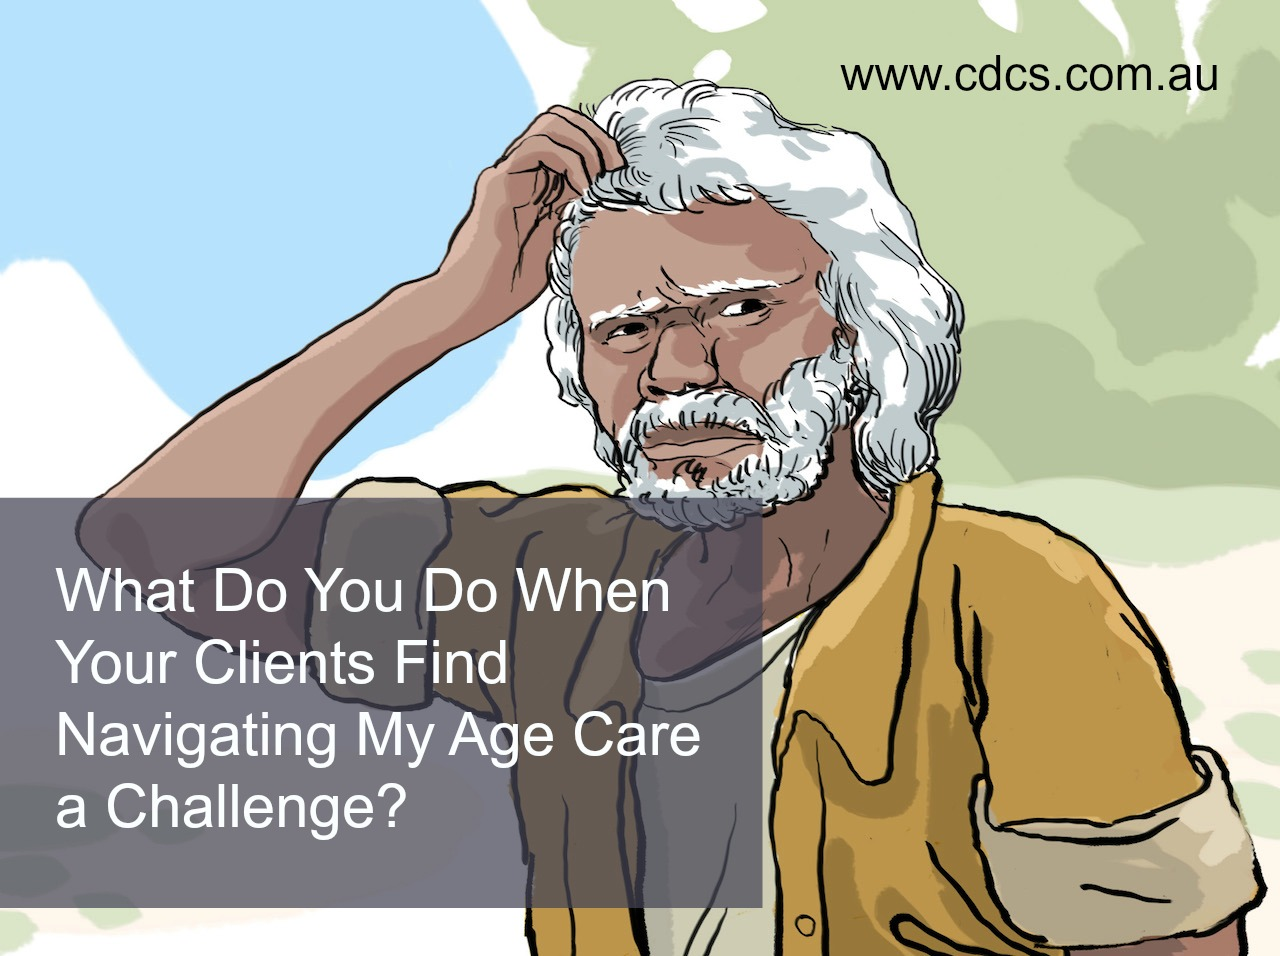 How can you support clients who are finding it difficult to navigate the aged care intake and assessment process of My Aged Care?